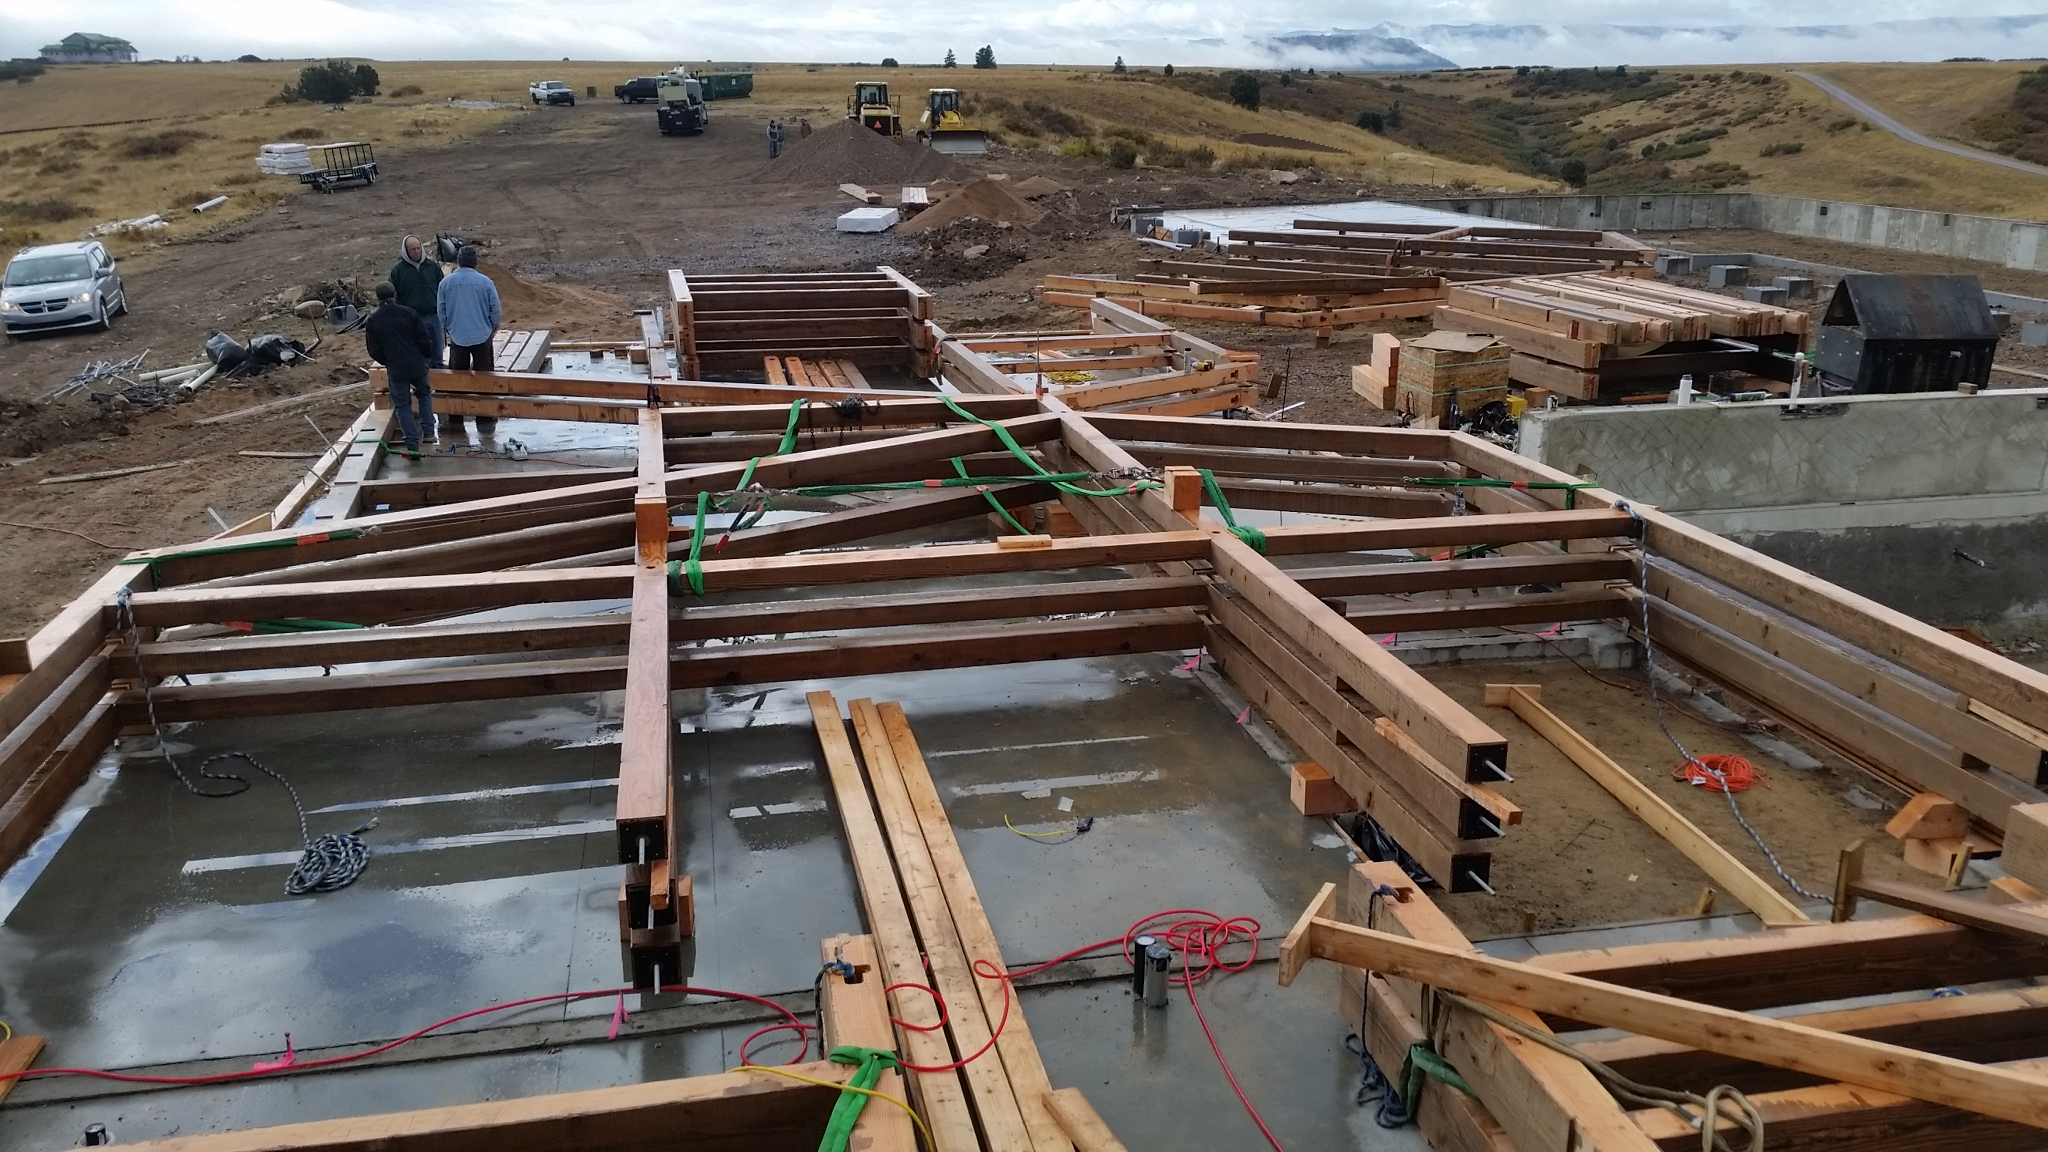 The pre-assembled bents sitting on the barn foundation give a sense of just how large the structure will be once raised.